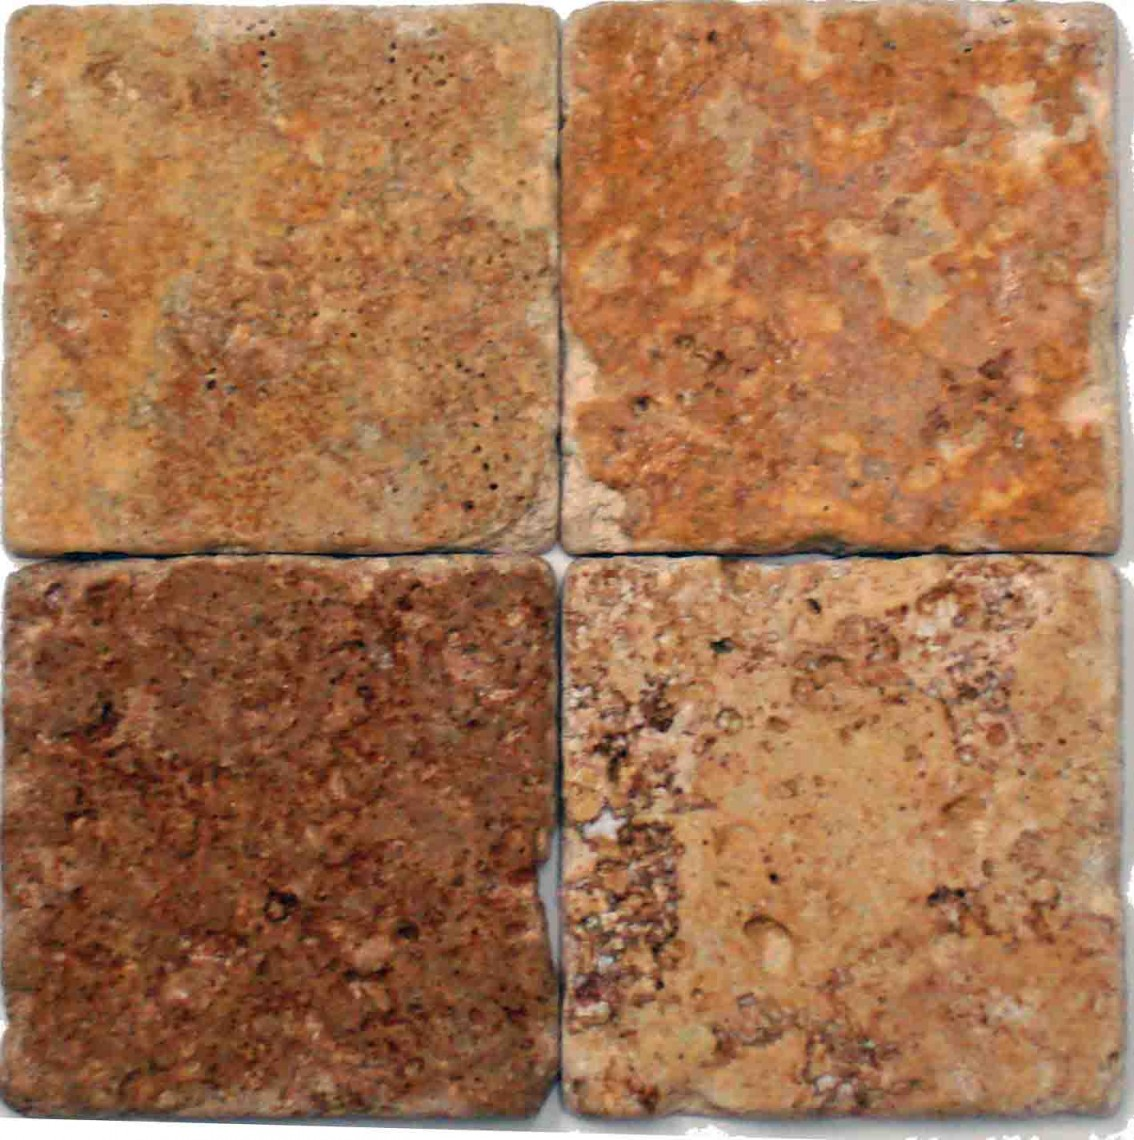 Mexican Tumbled Stone Interior And Exterior Stone Tile Flooring